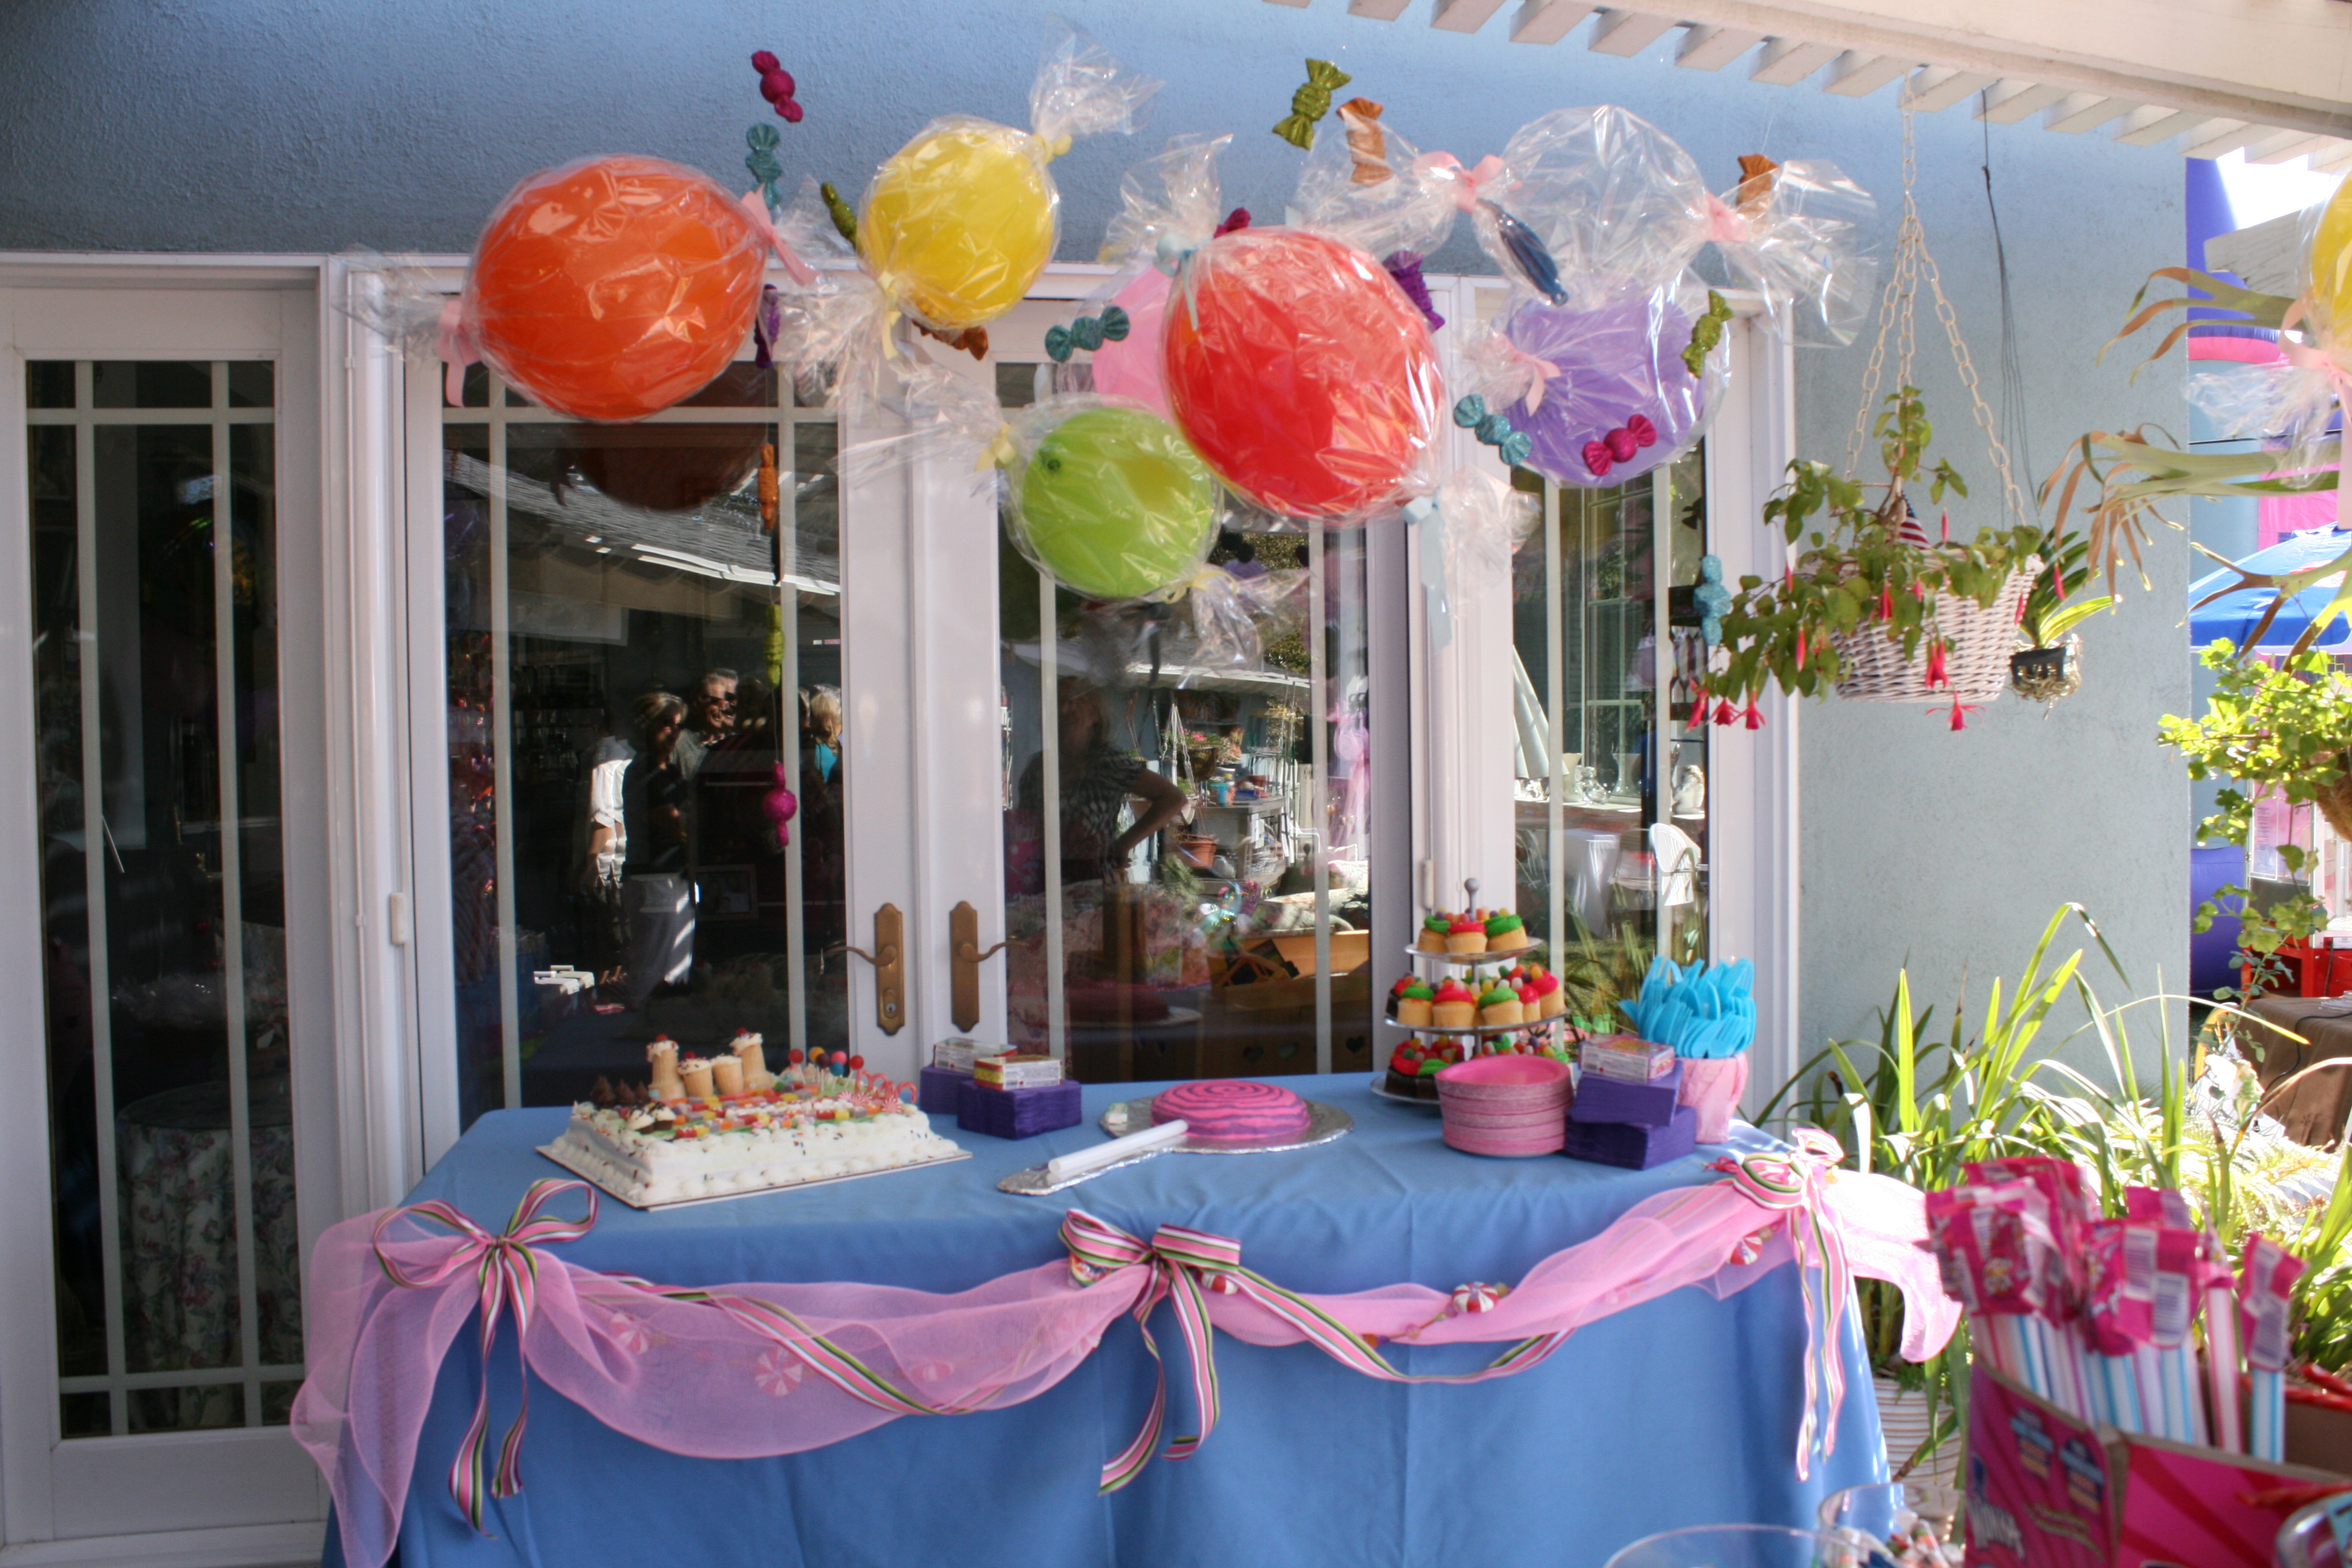 Hanging gum drops candyland party theme pinterest - Candyland party table decorations ...